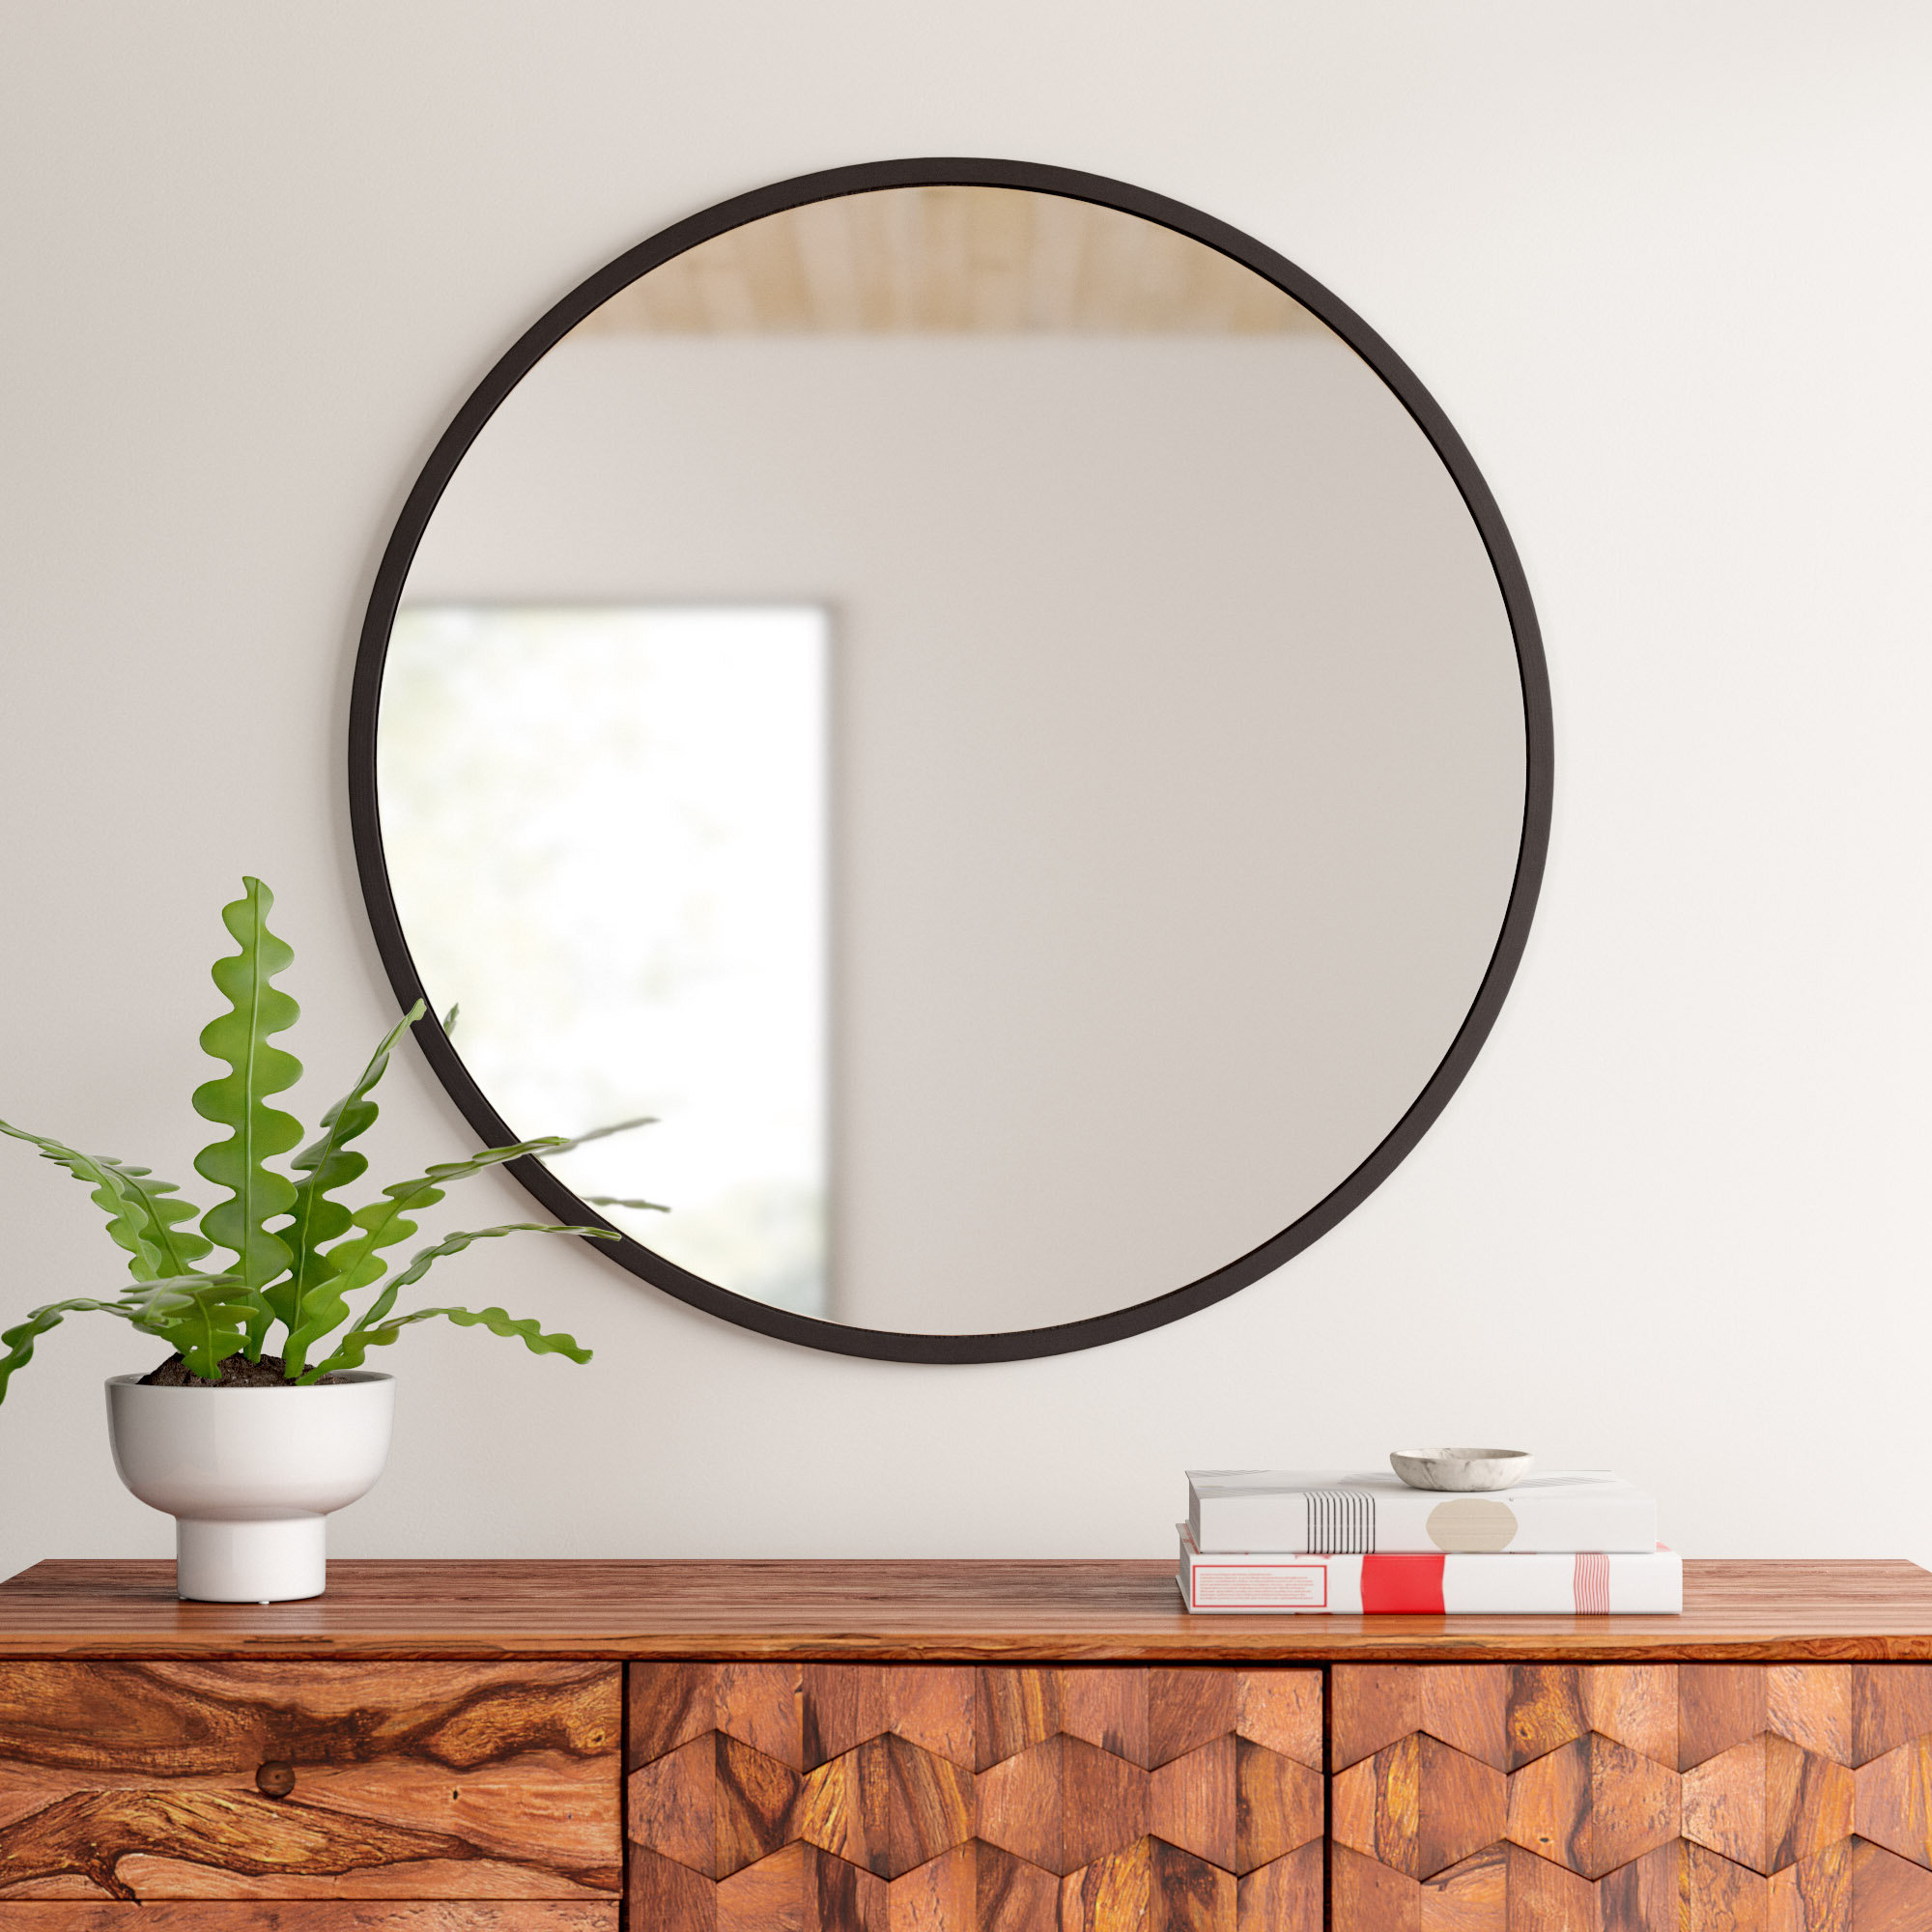 Levan Modern & Contemporary Accent Mirrors Pertaining To Popular Umbra Hub Modern And Contemporary Accent Mirror (Gallery 13 of 20)